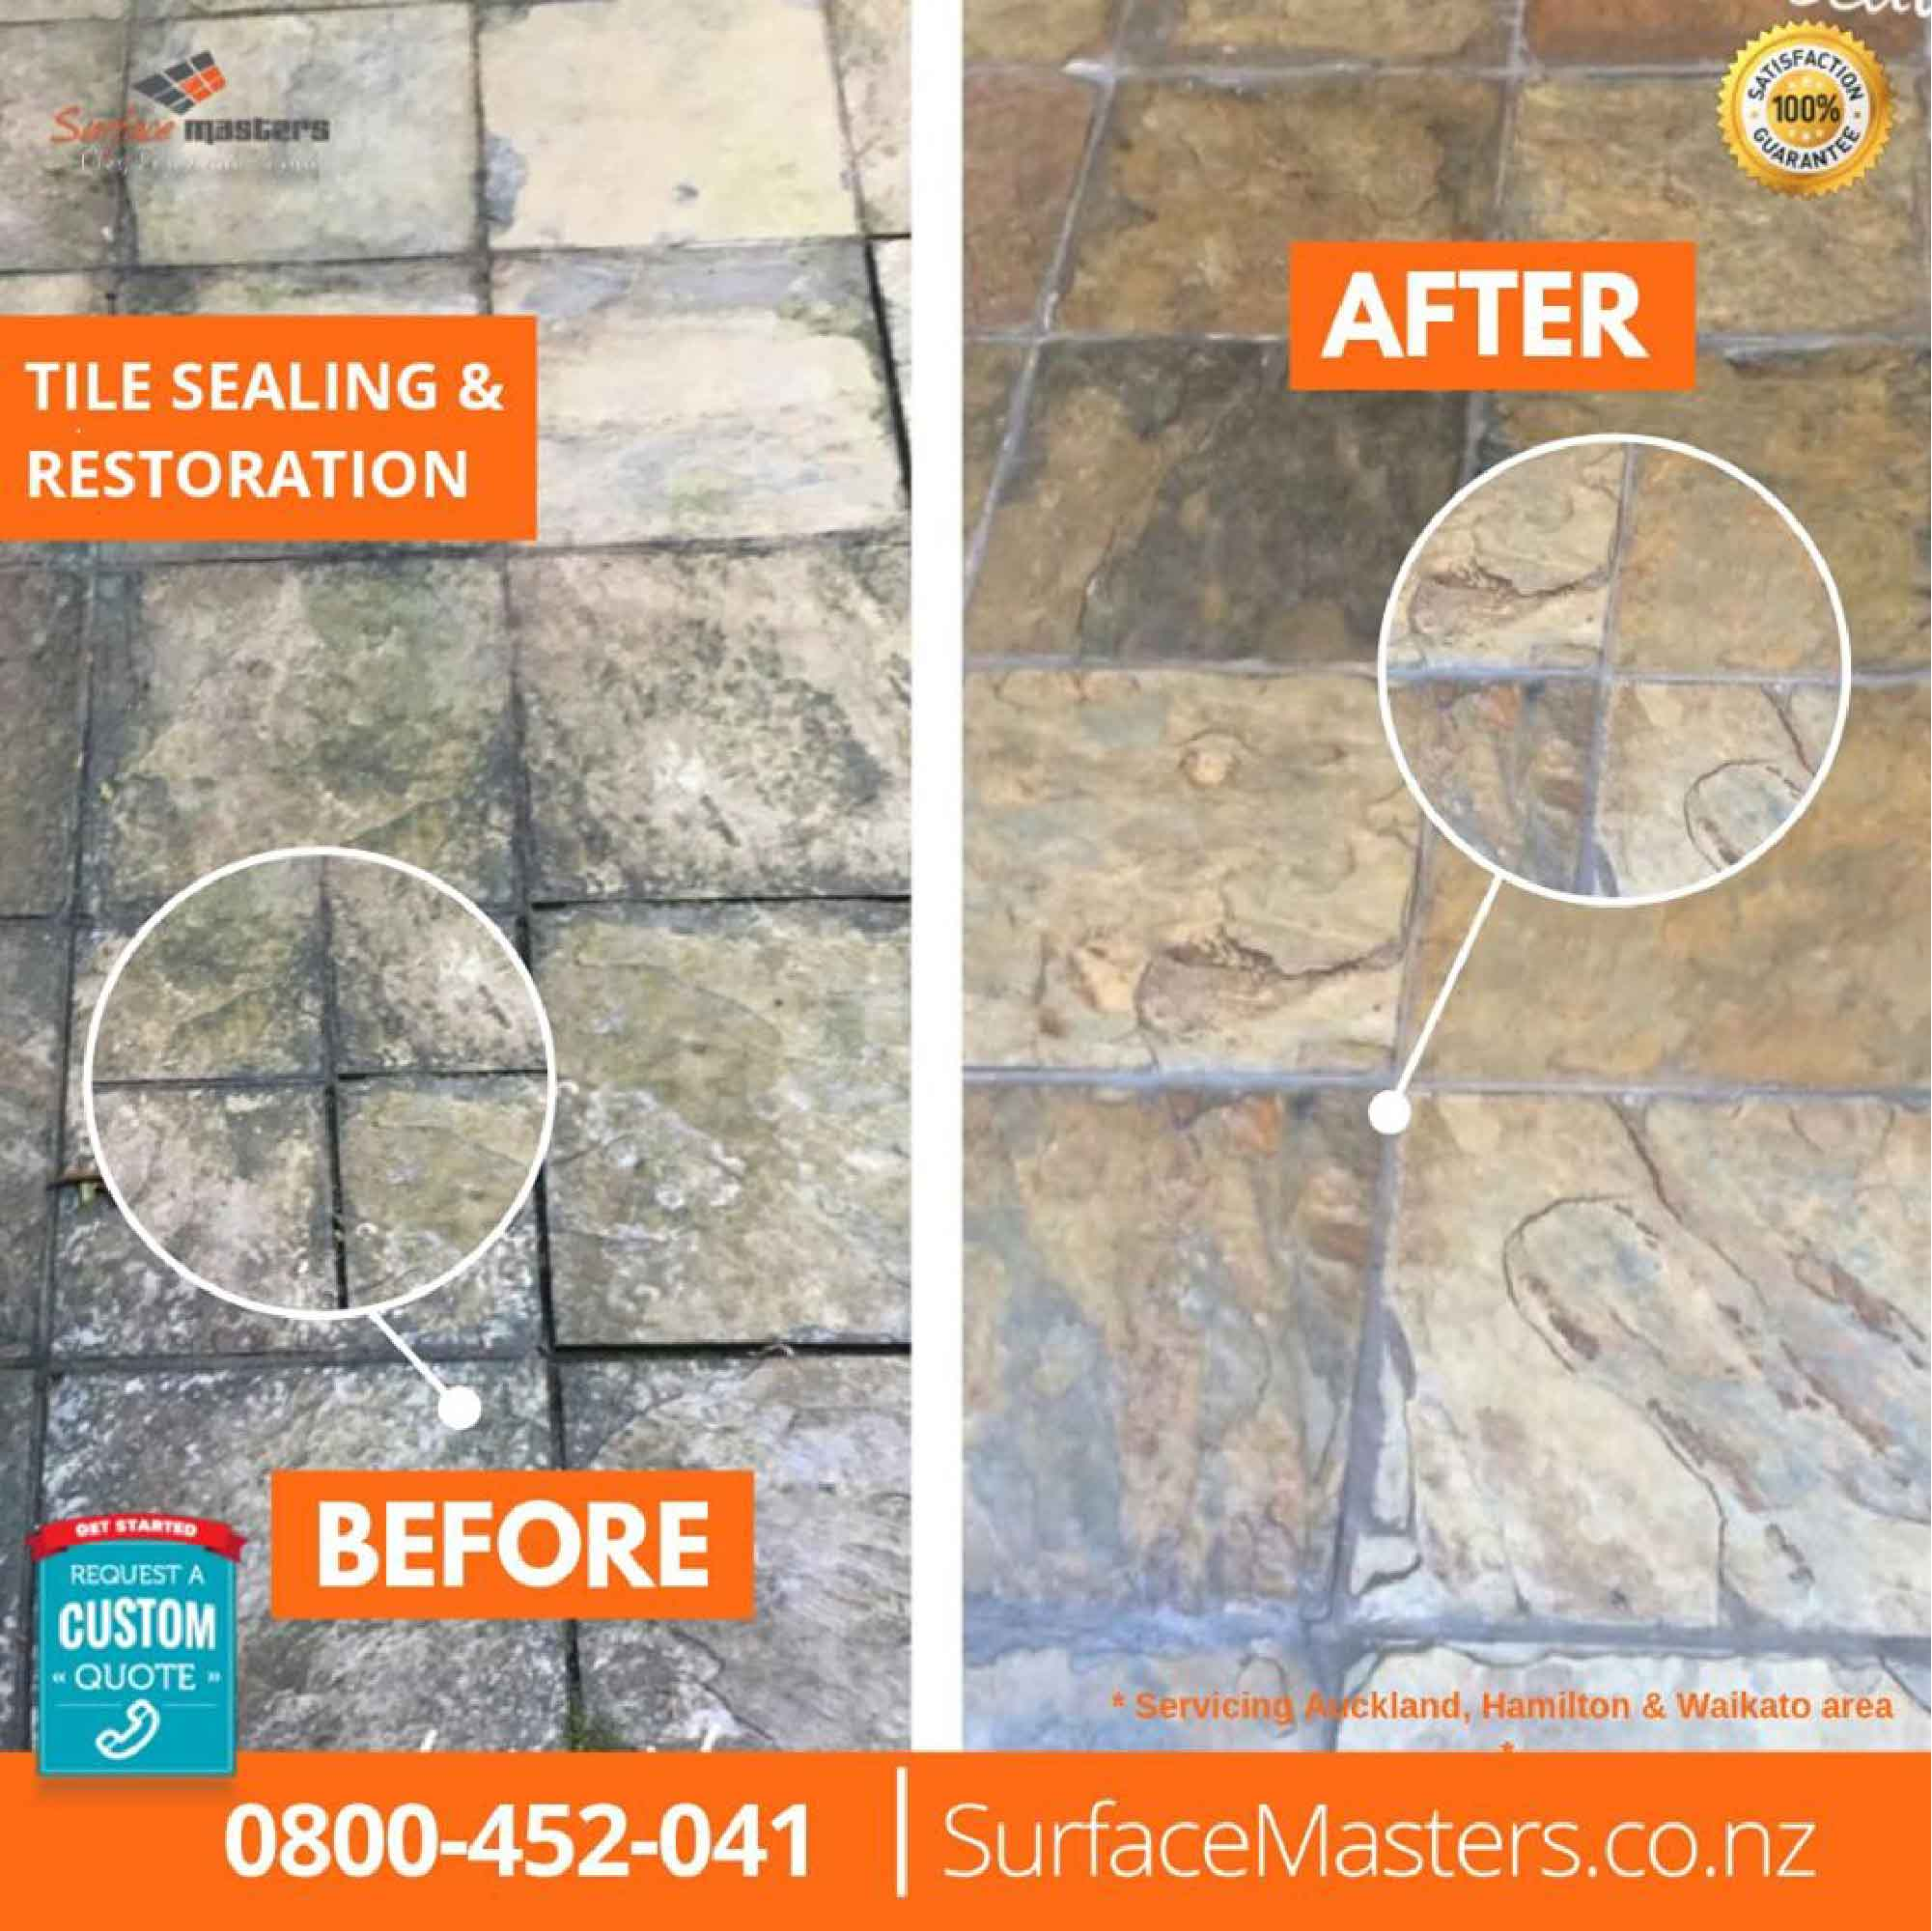 Tile sealing transformation on tiles before and after